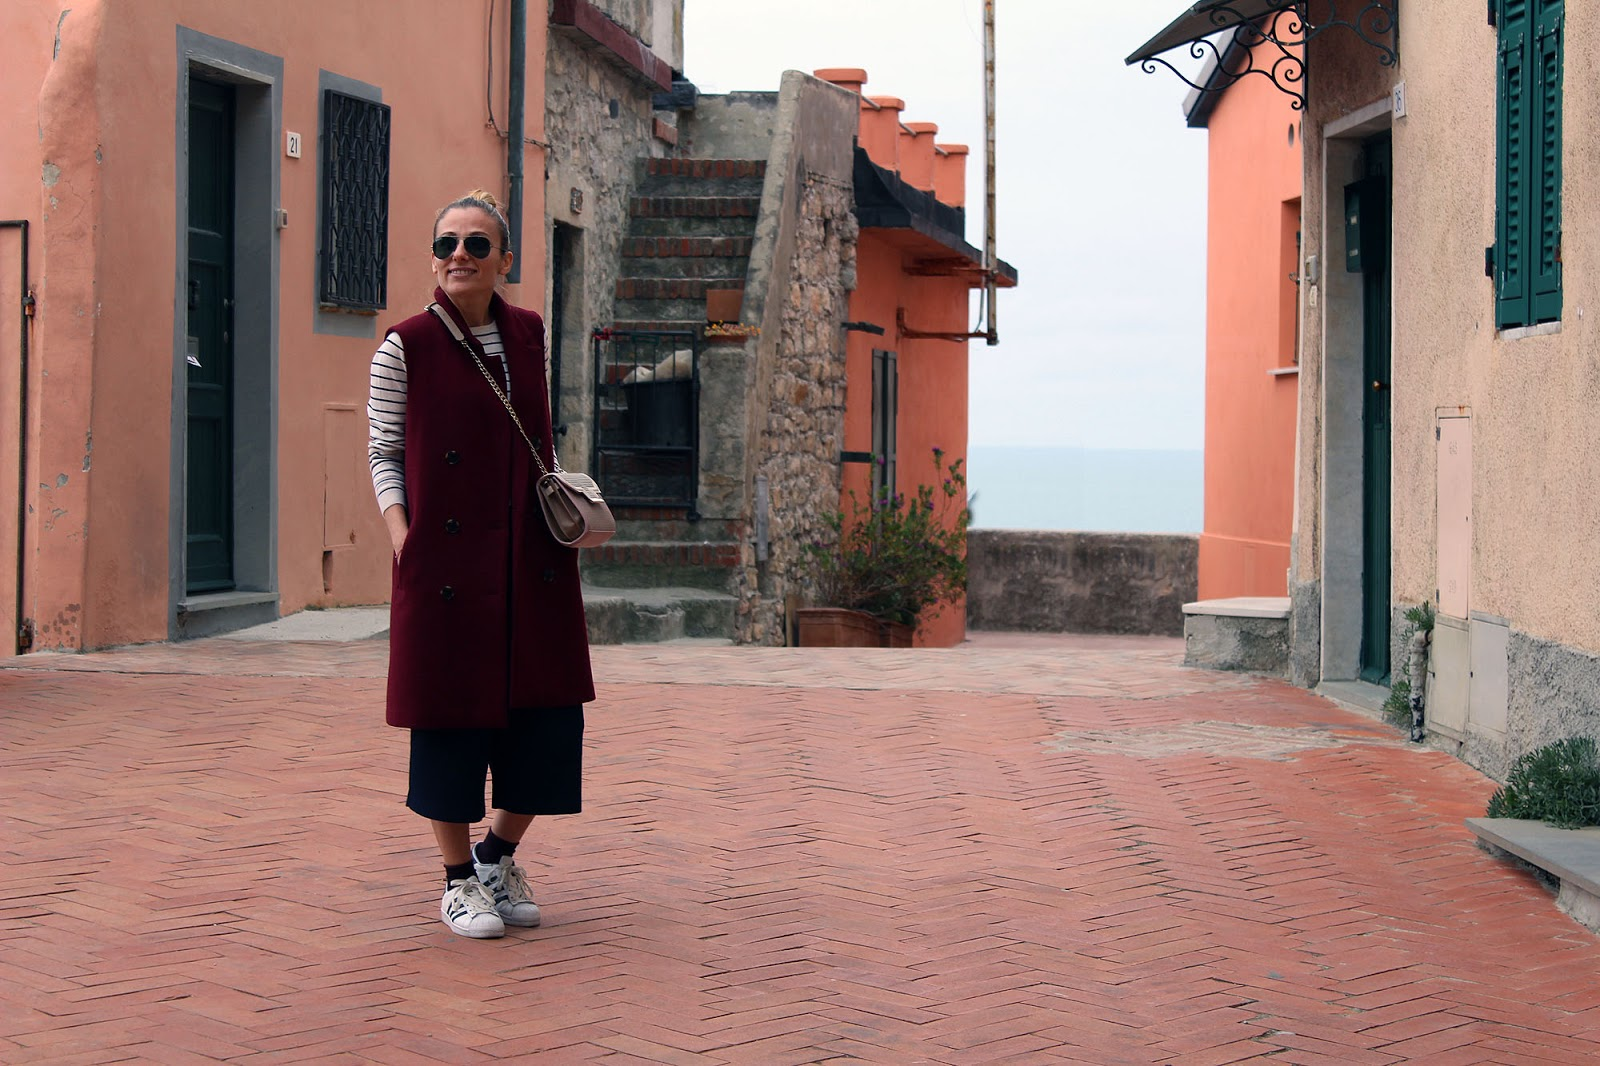 Eniwhere Fashion - Tellaro - Liguria